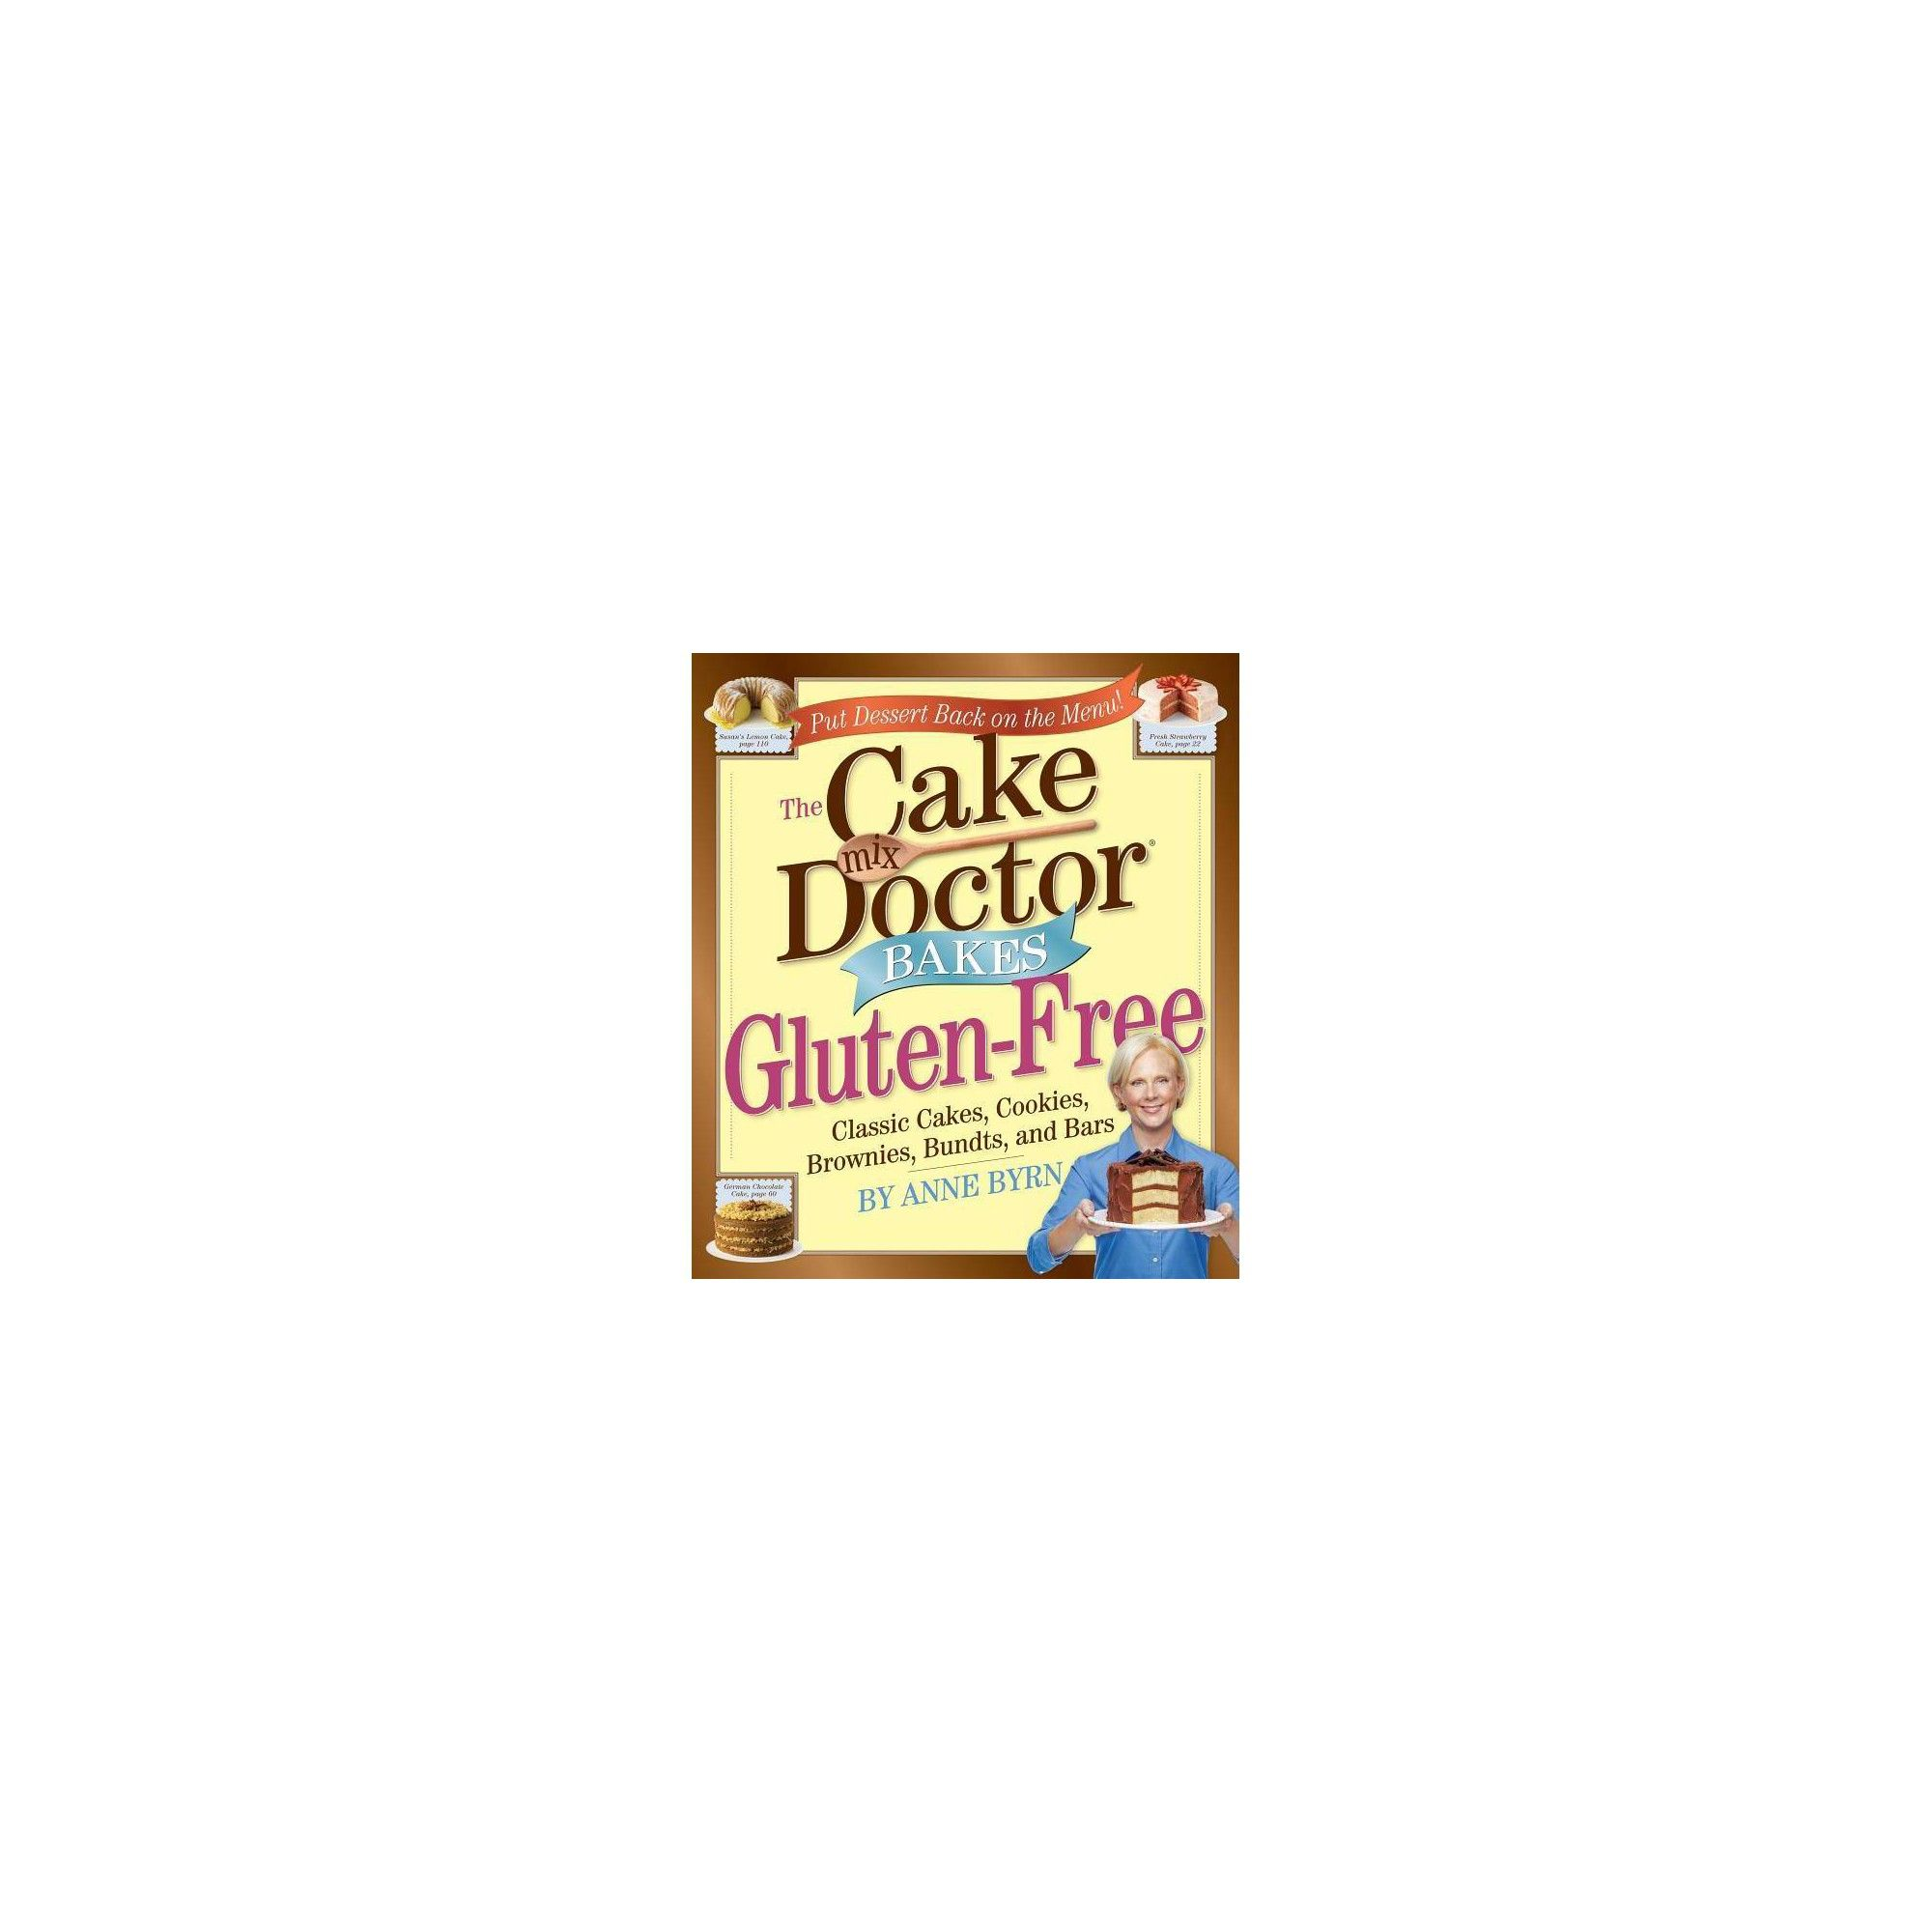 Cake Mix Doctor Bakes Gluten Free By Anne Byrn